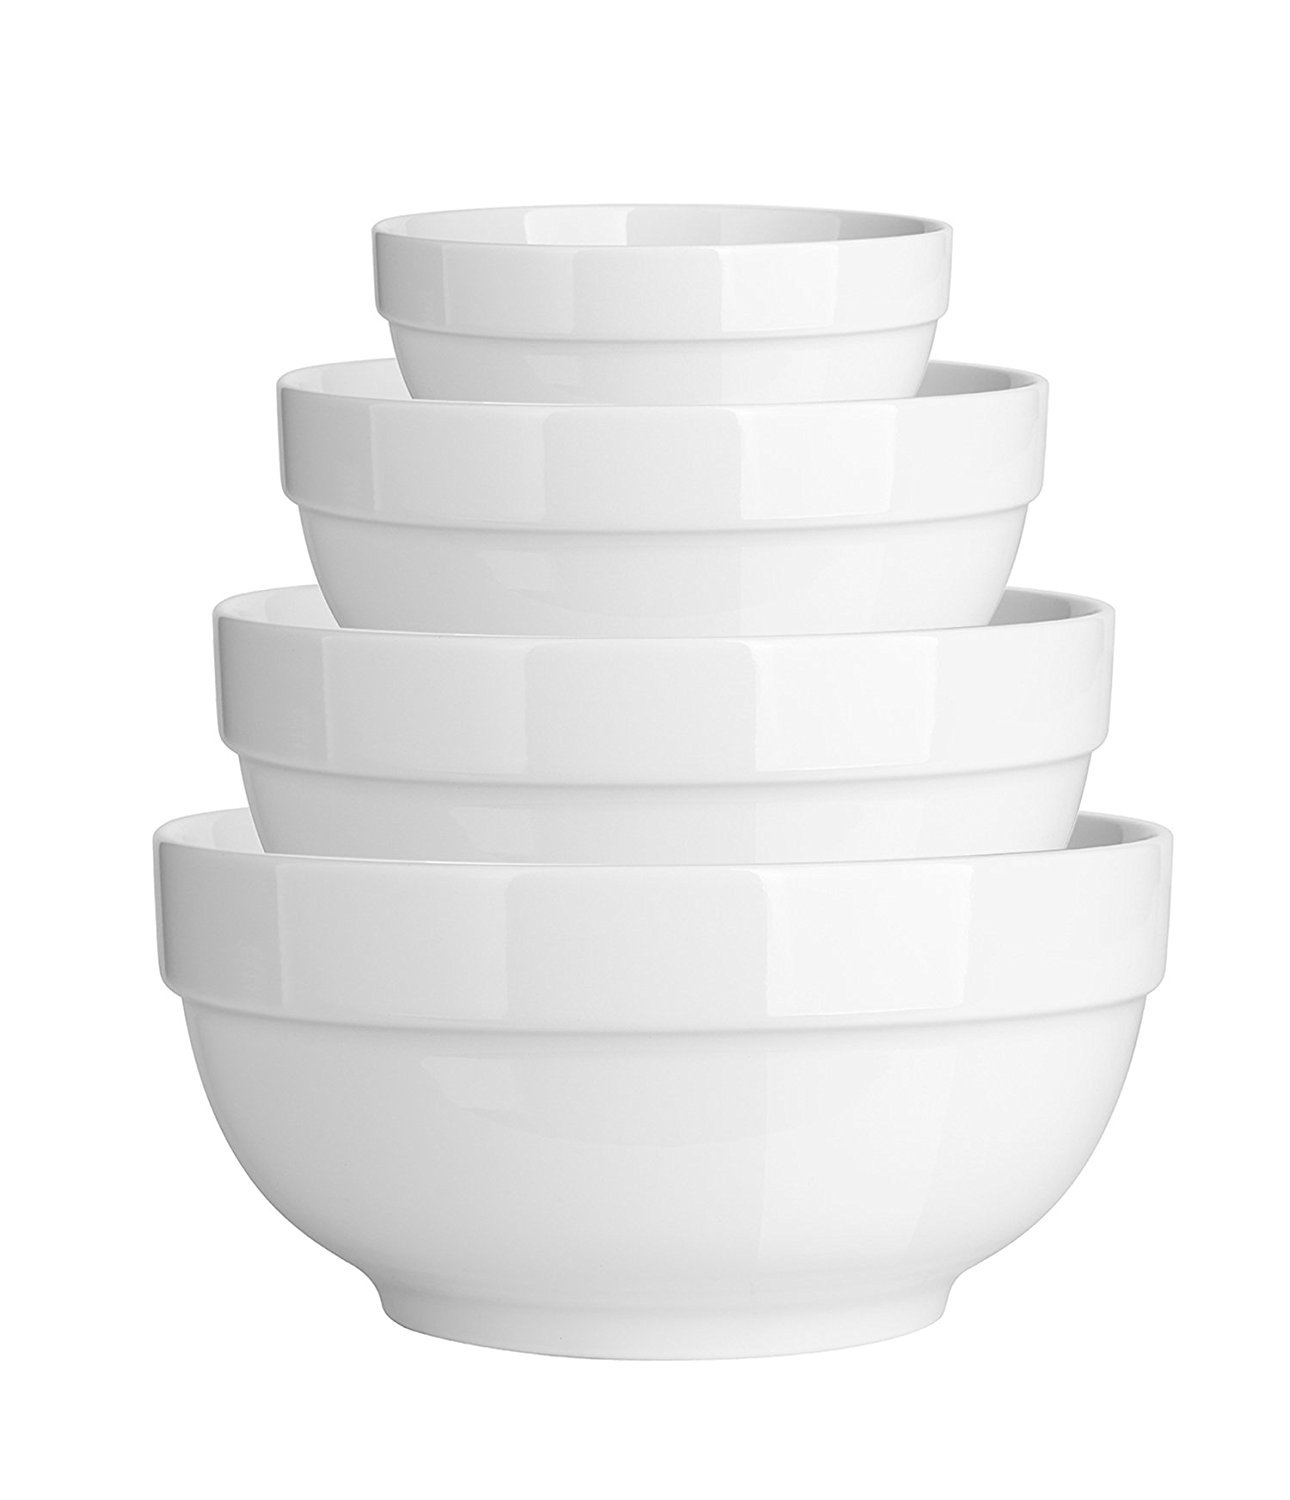 DOWAN Porcelain Mixing/Serving Bowl Set, White Anti-slipping Nesting Bowls Sihai